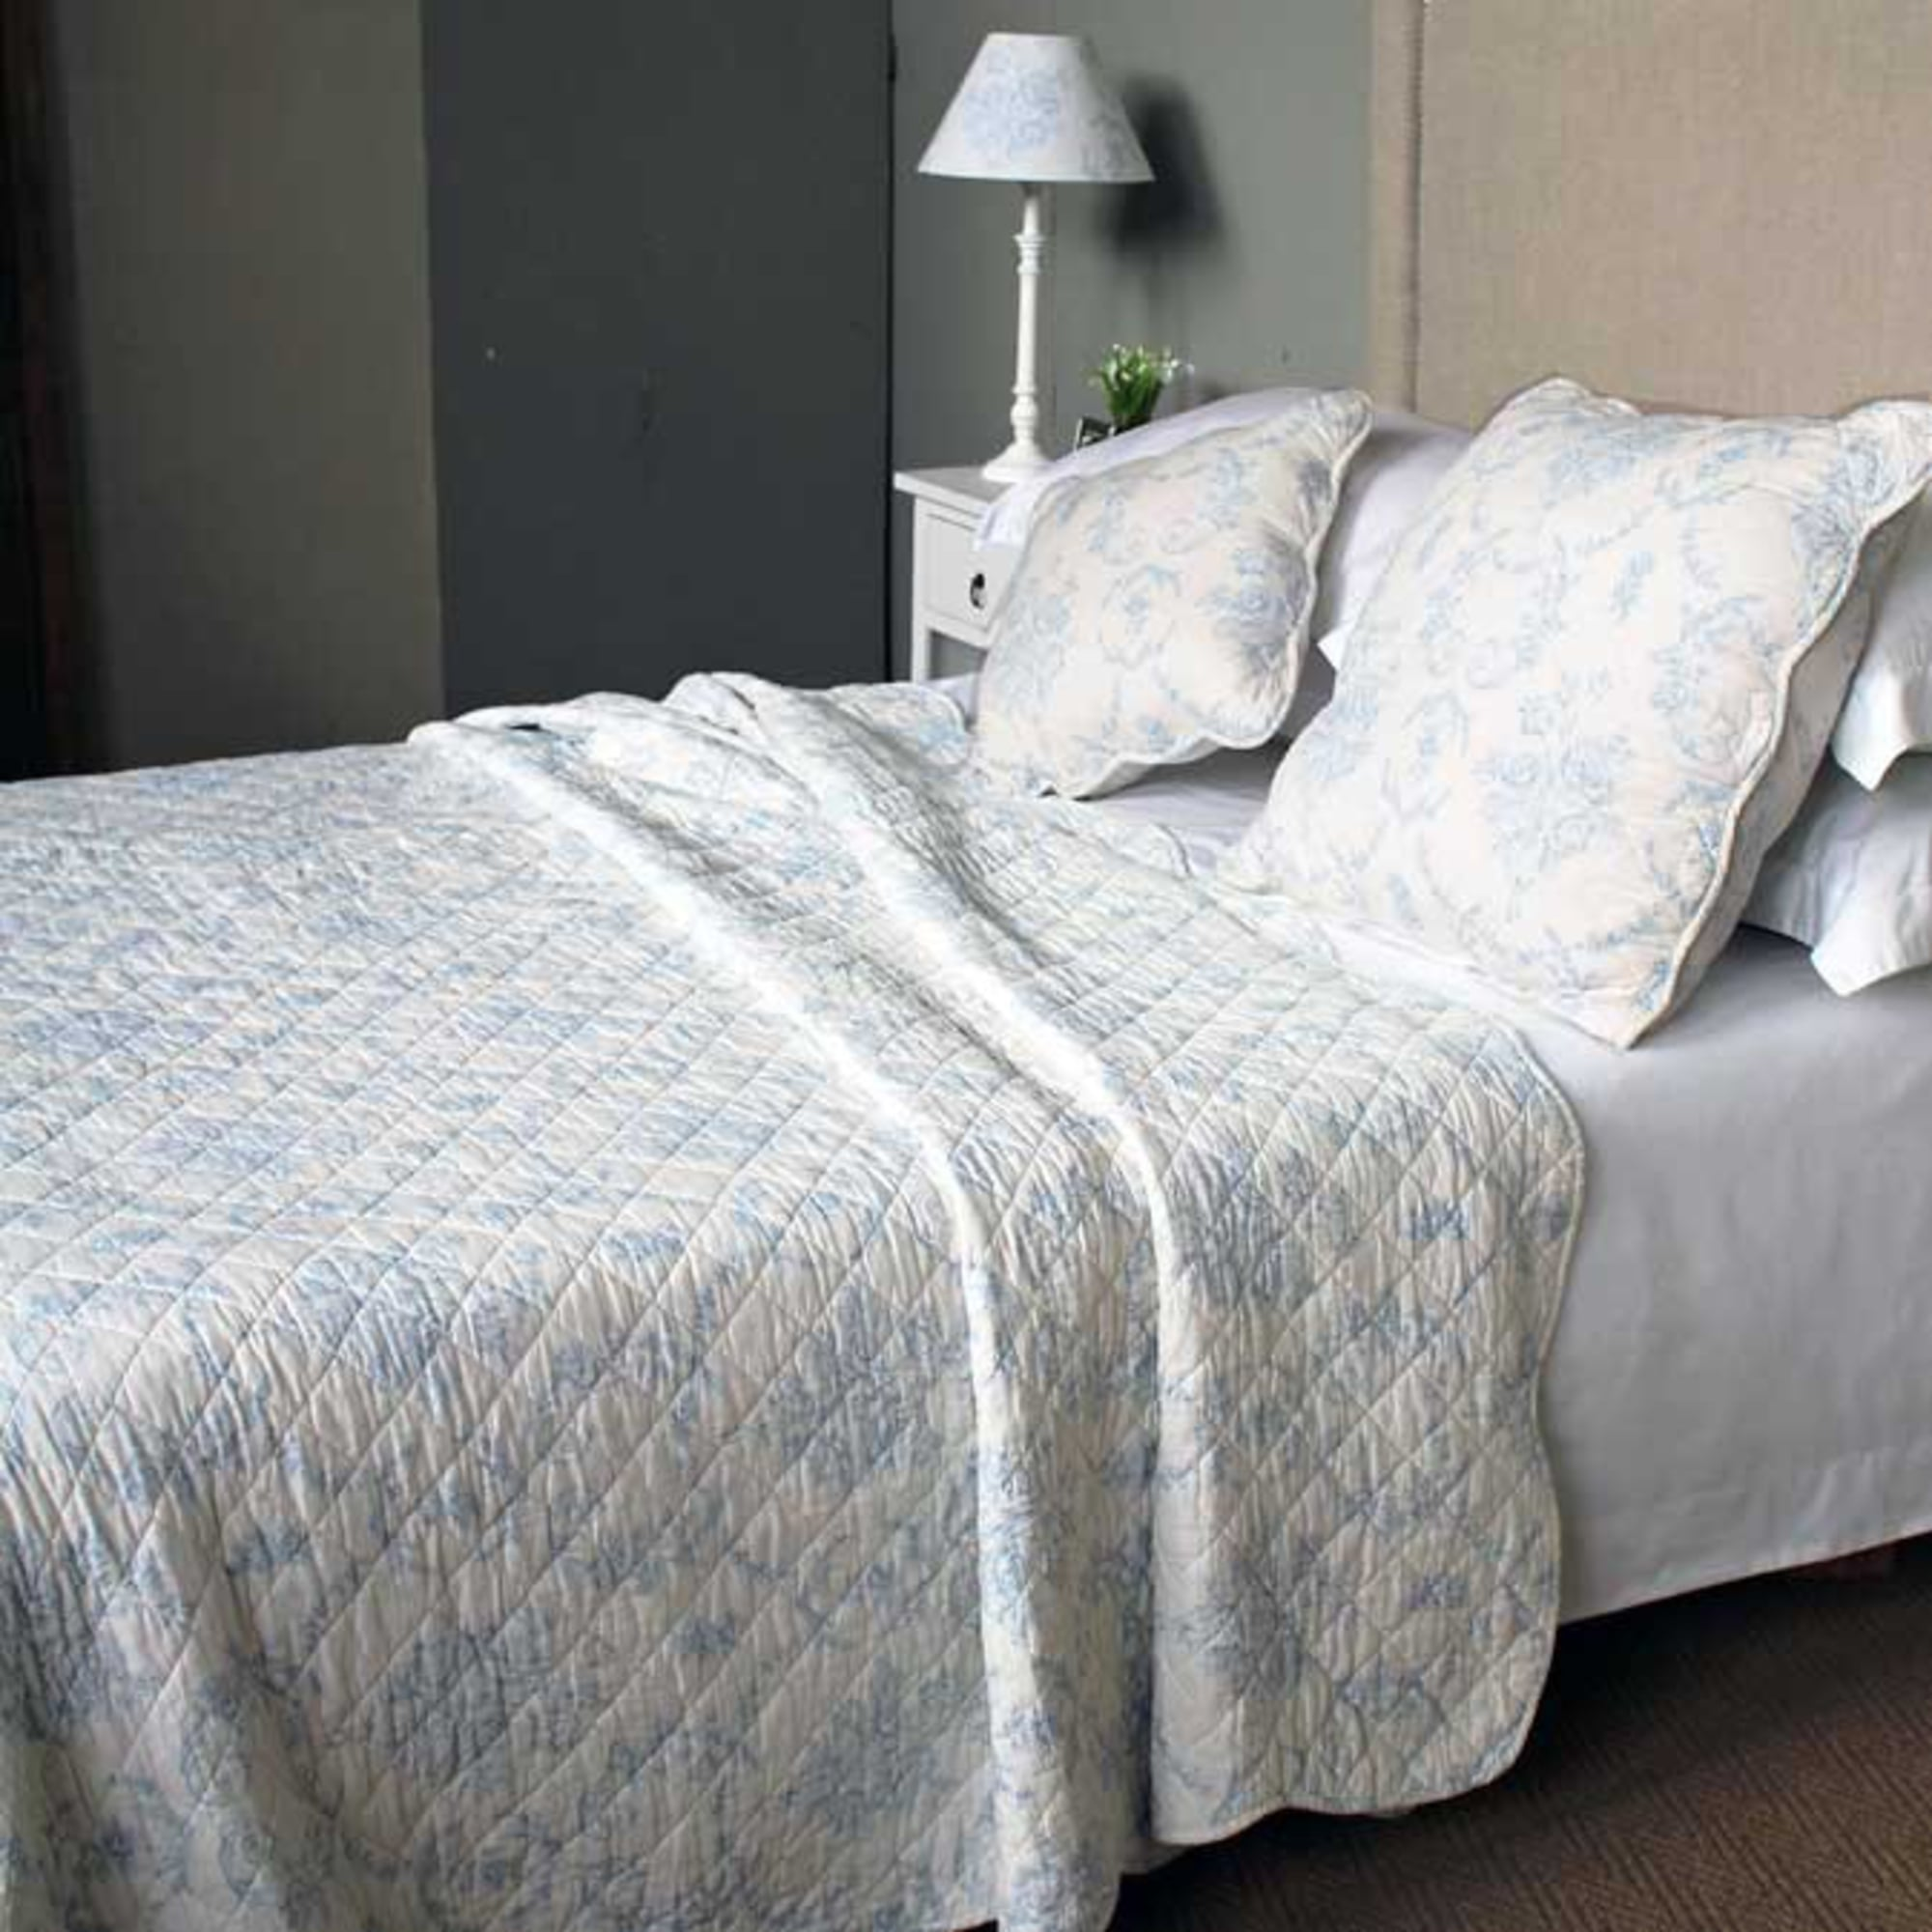 inc set damask embroidered bed quilted home shop blue bedspread quilt spreads bedspreads bnf